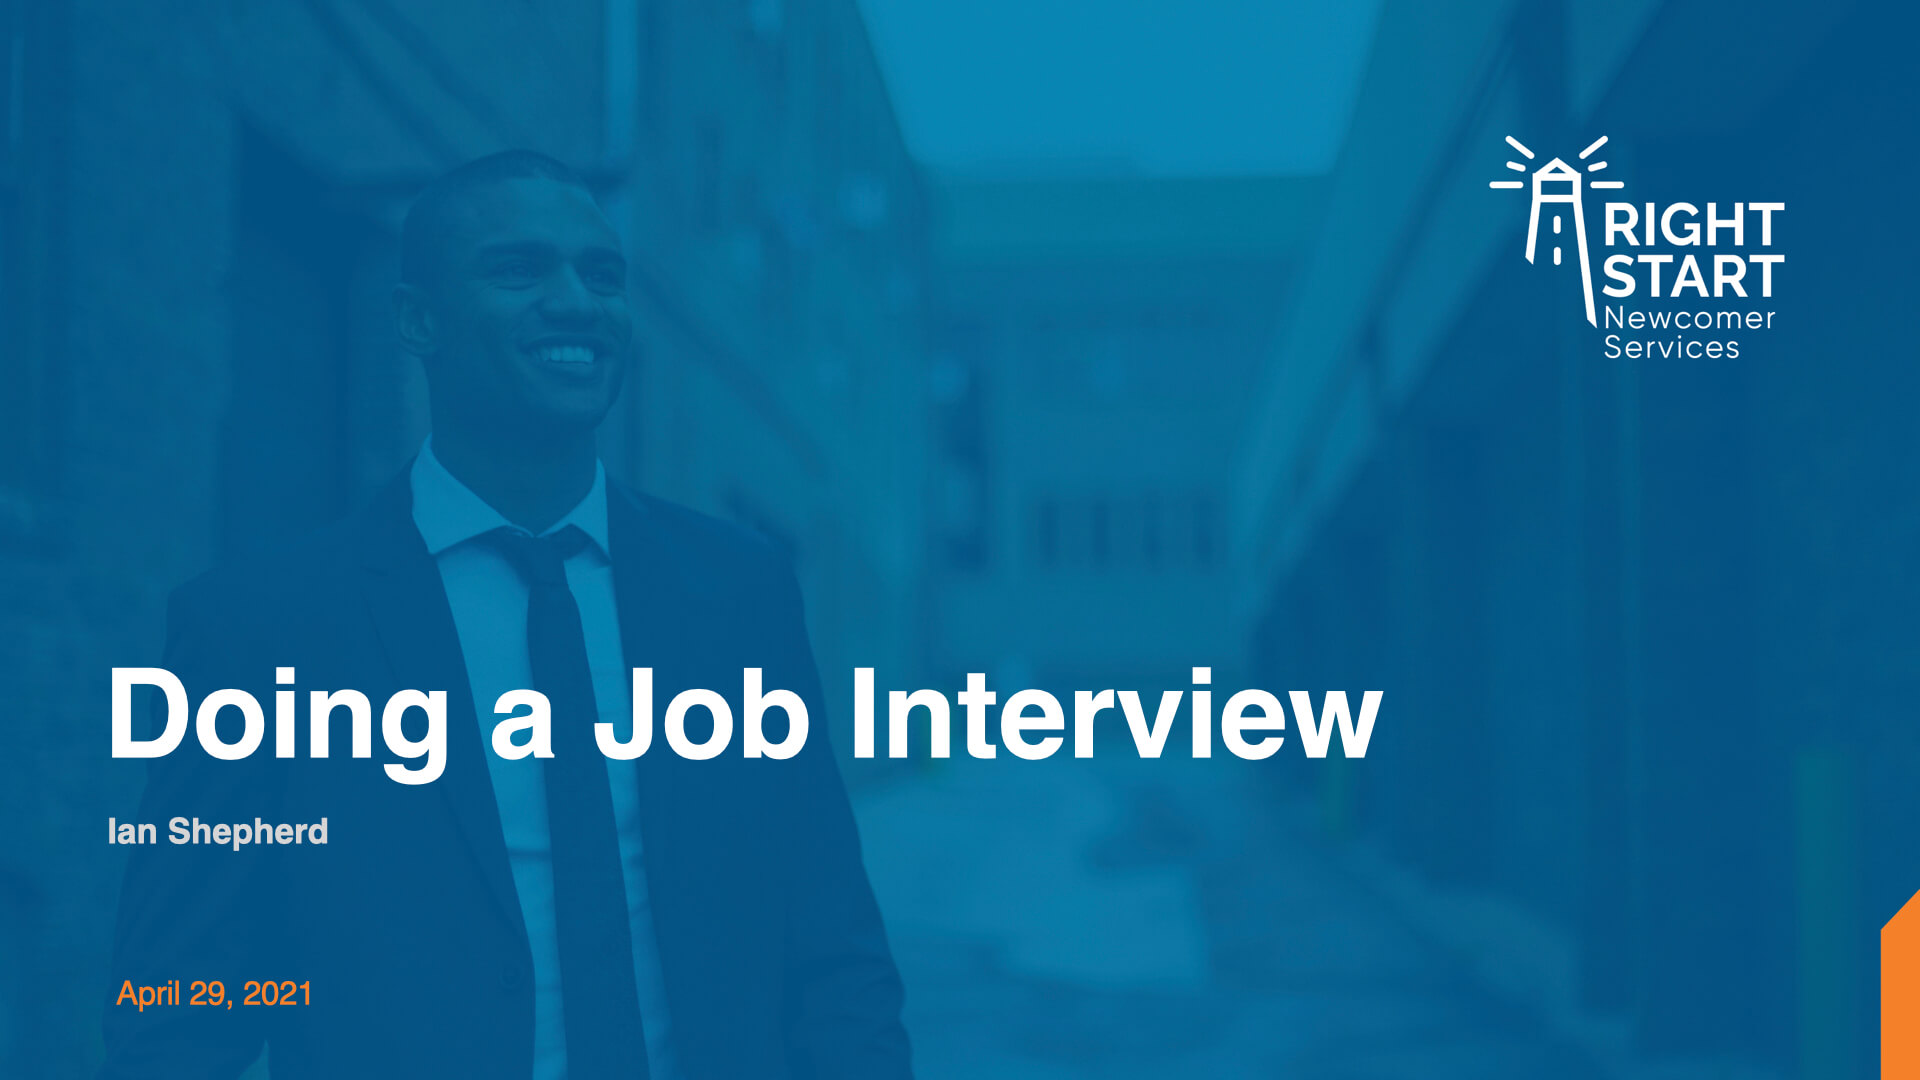 Learn Canadian English - Doing a Job Interview slides